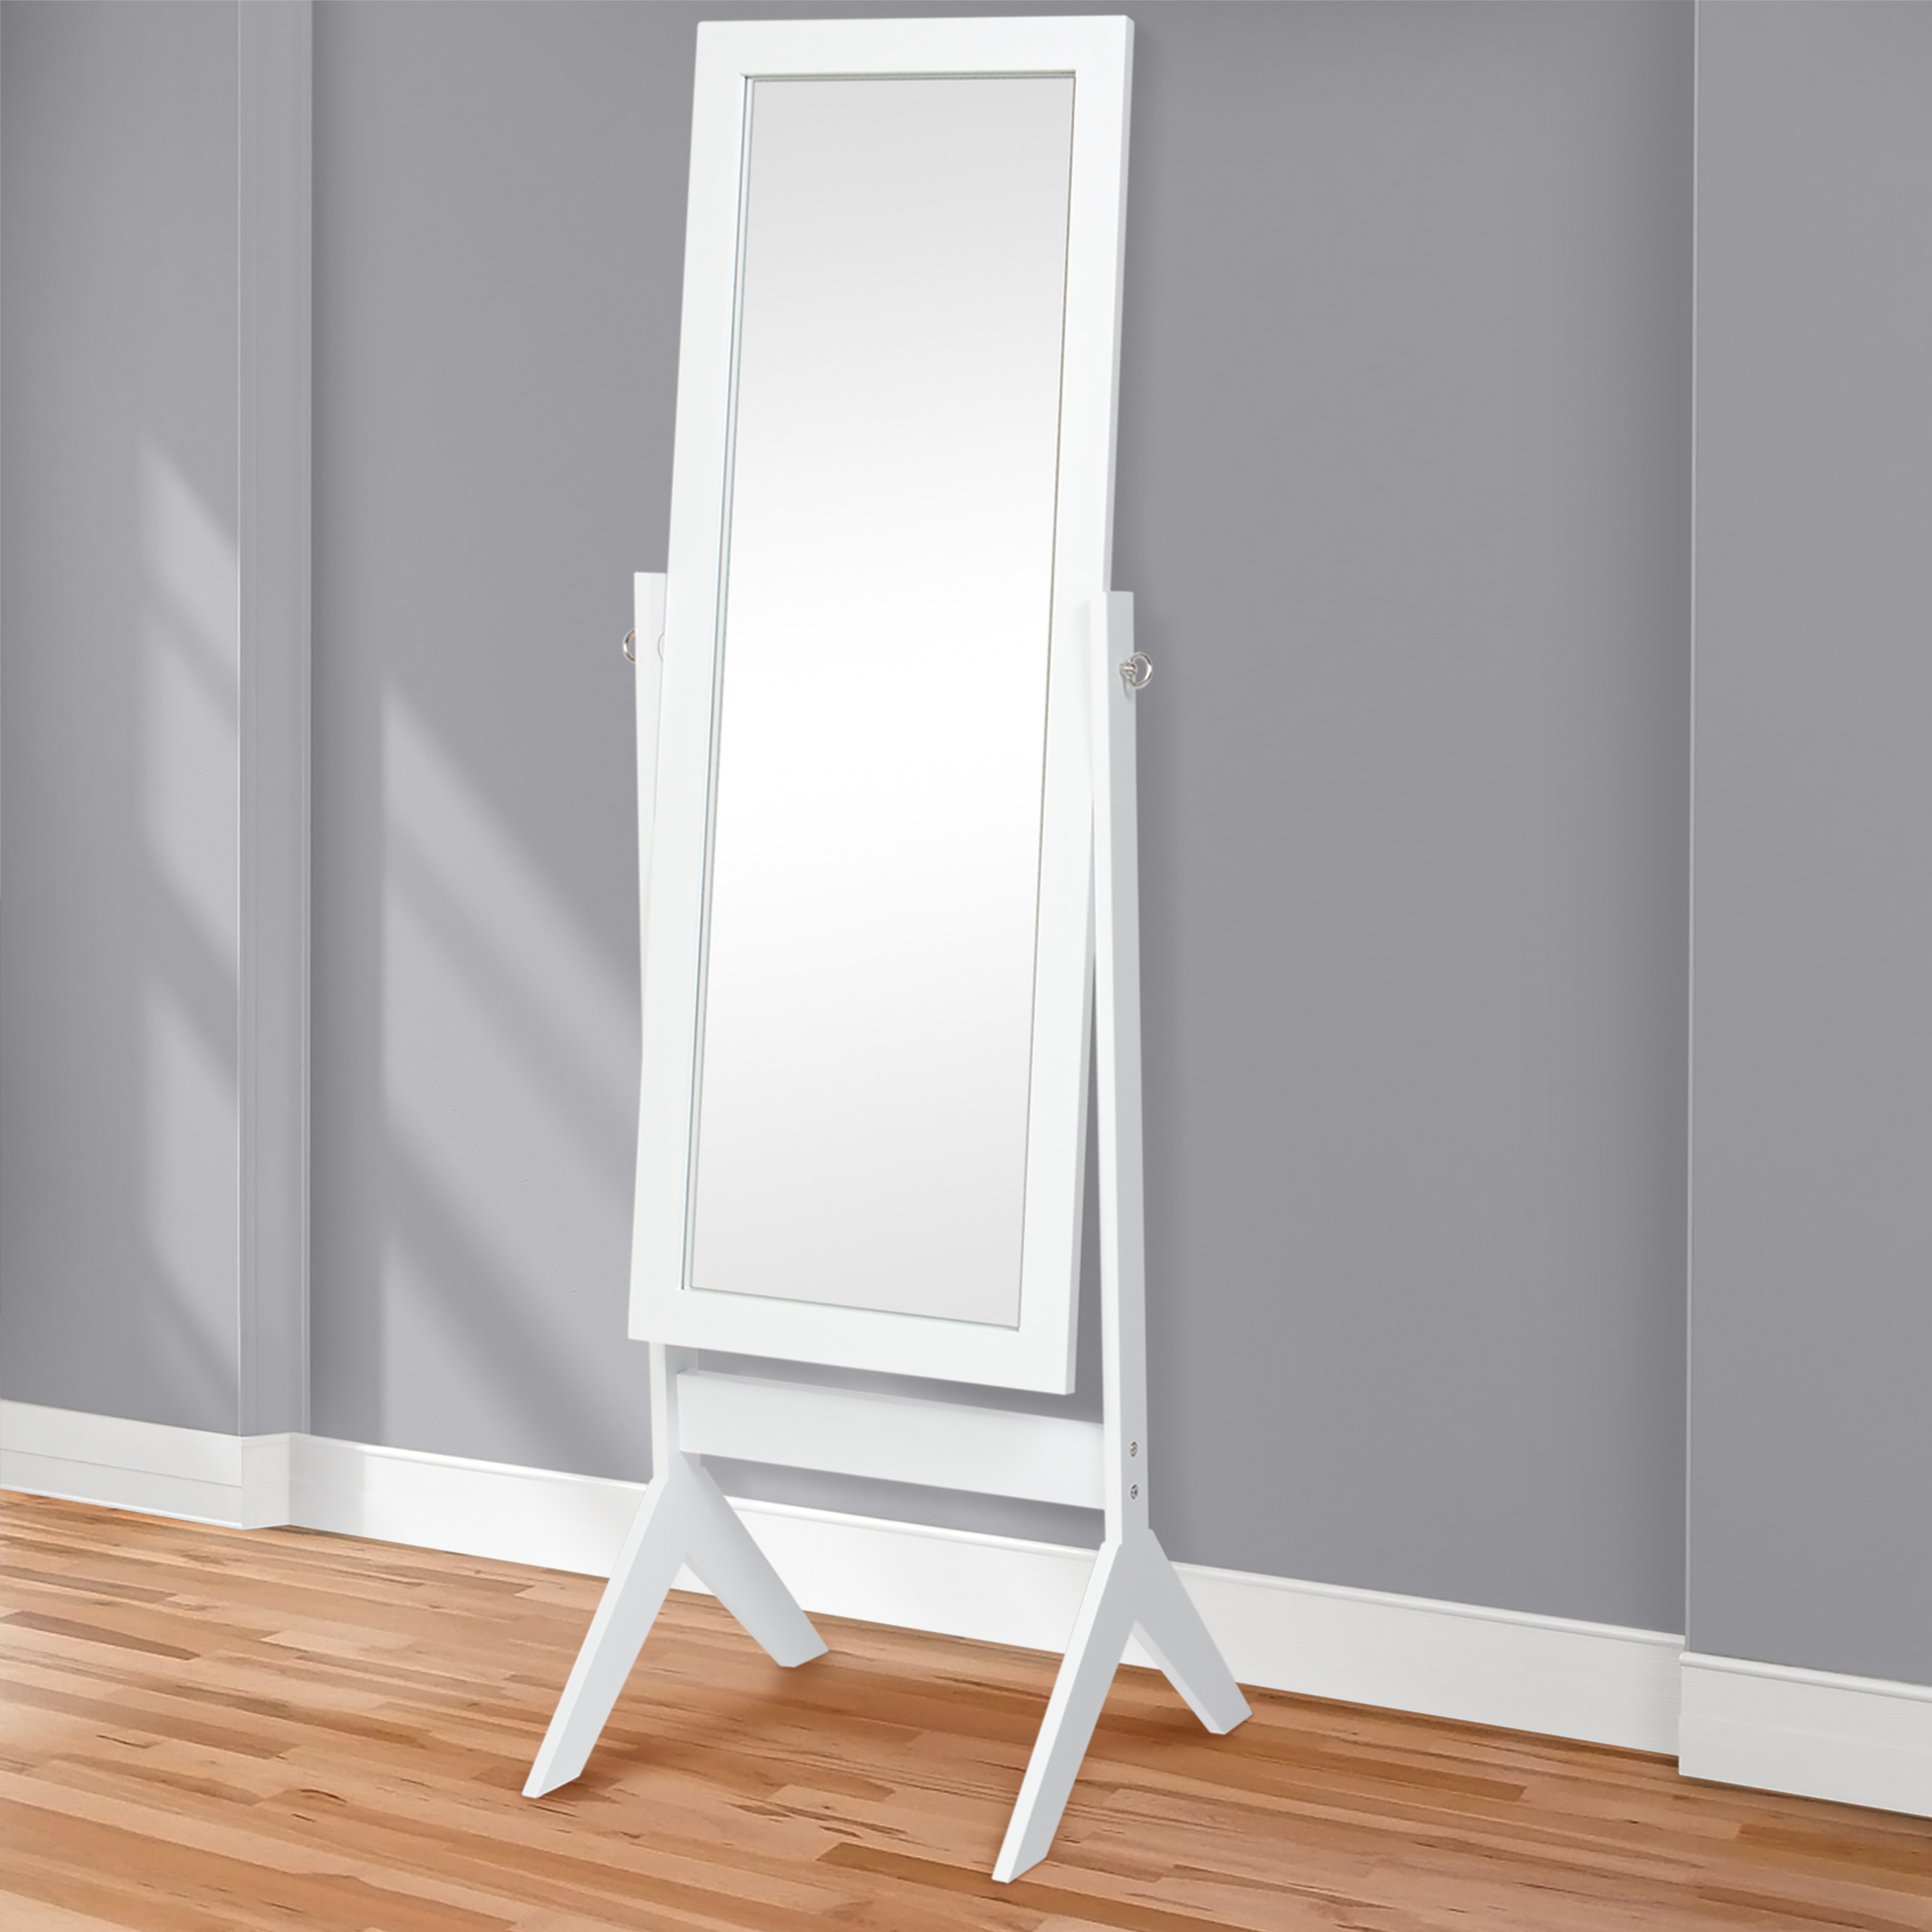 Best Choice Products Cheval Floor Mirror Bedroom Home Furniture- White by